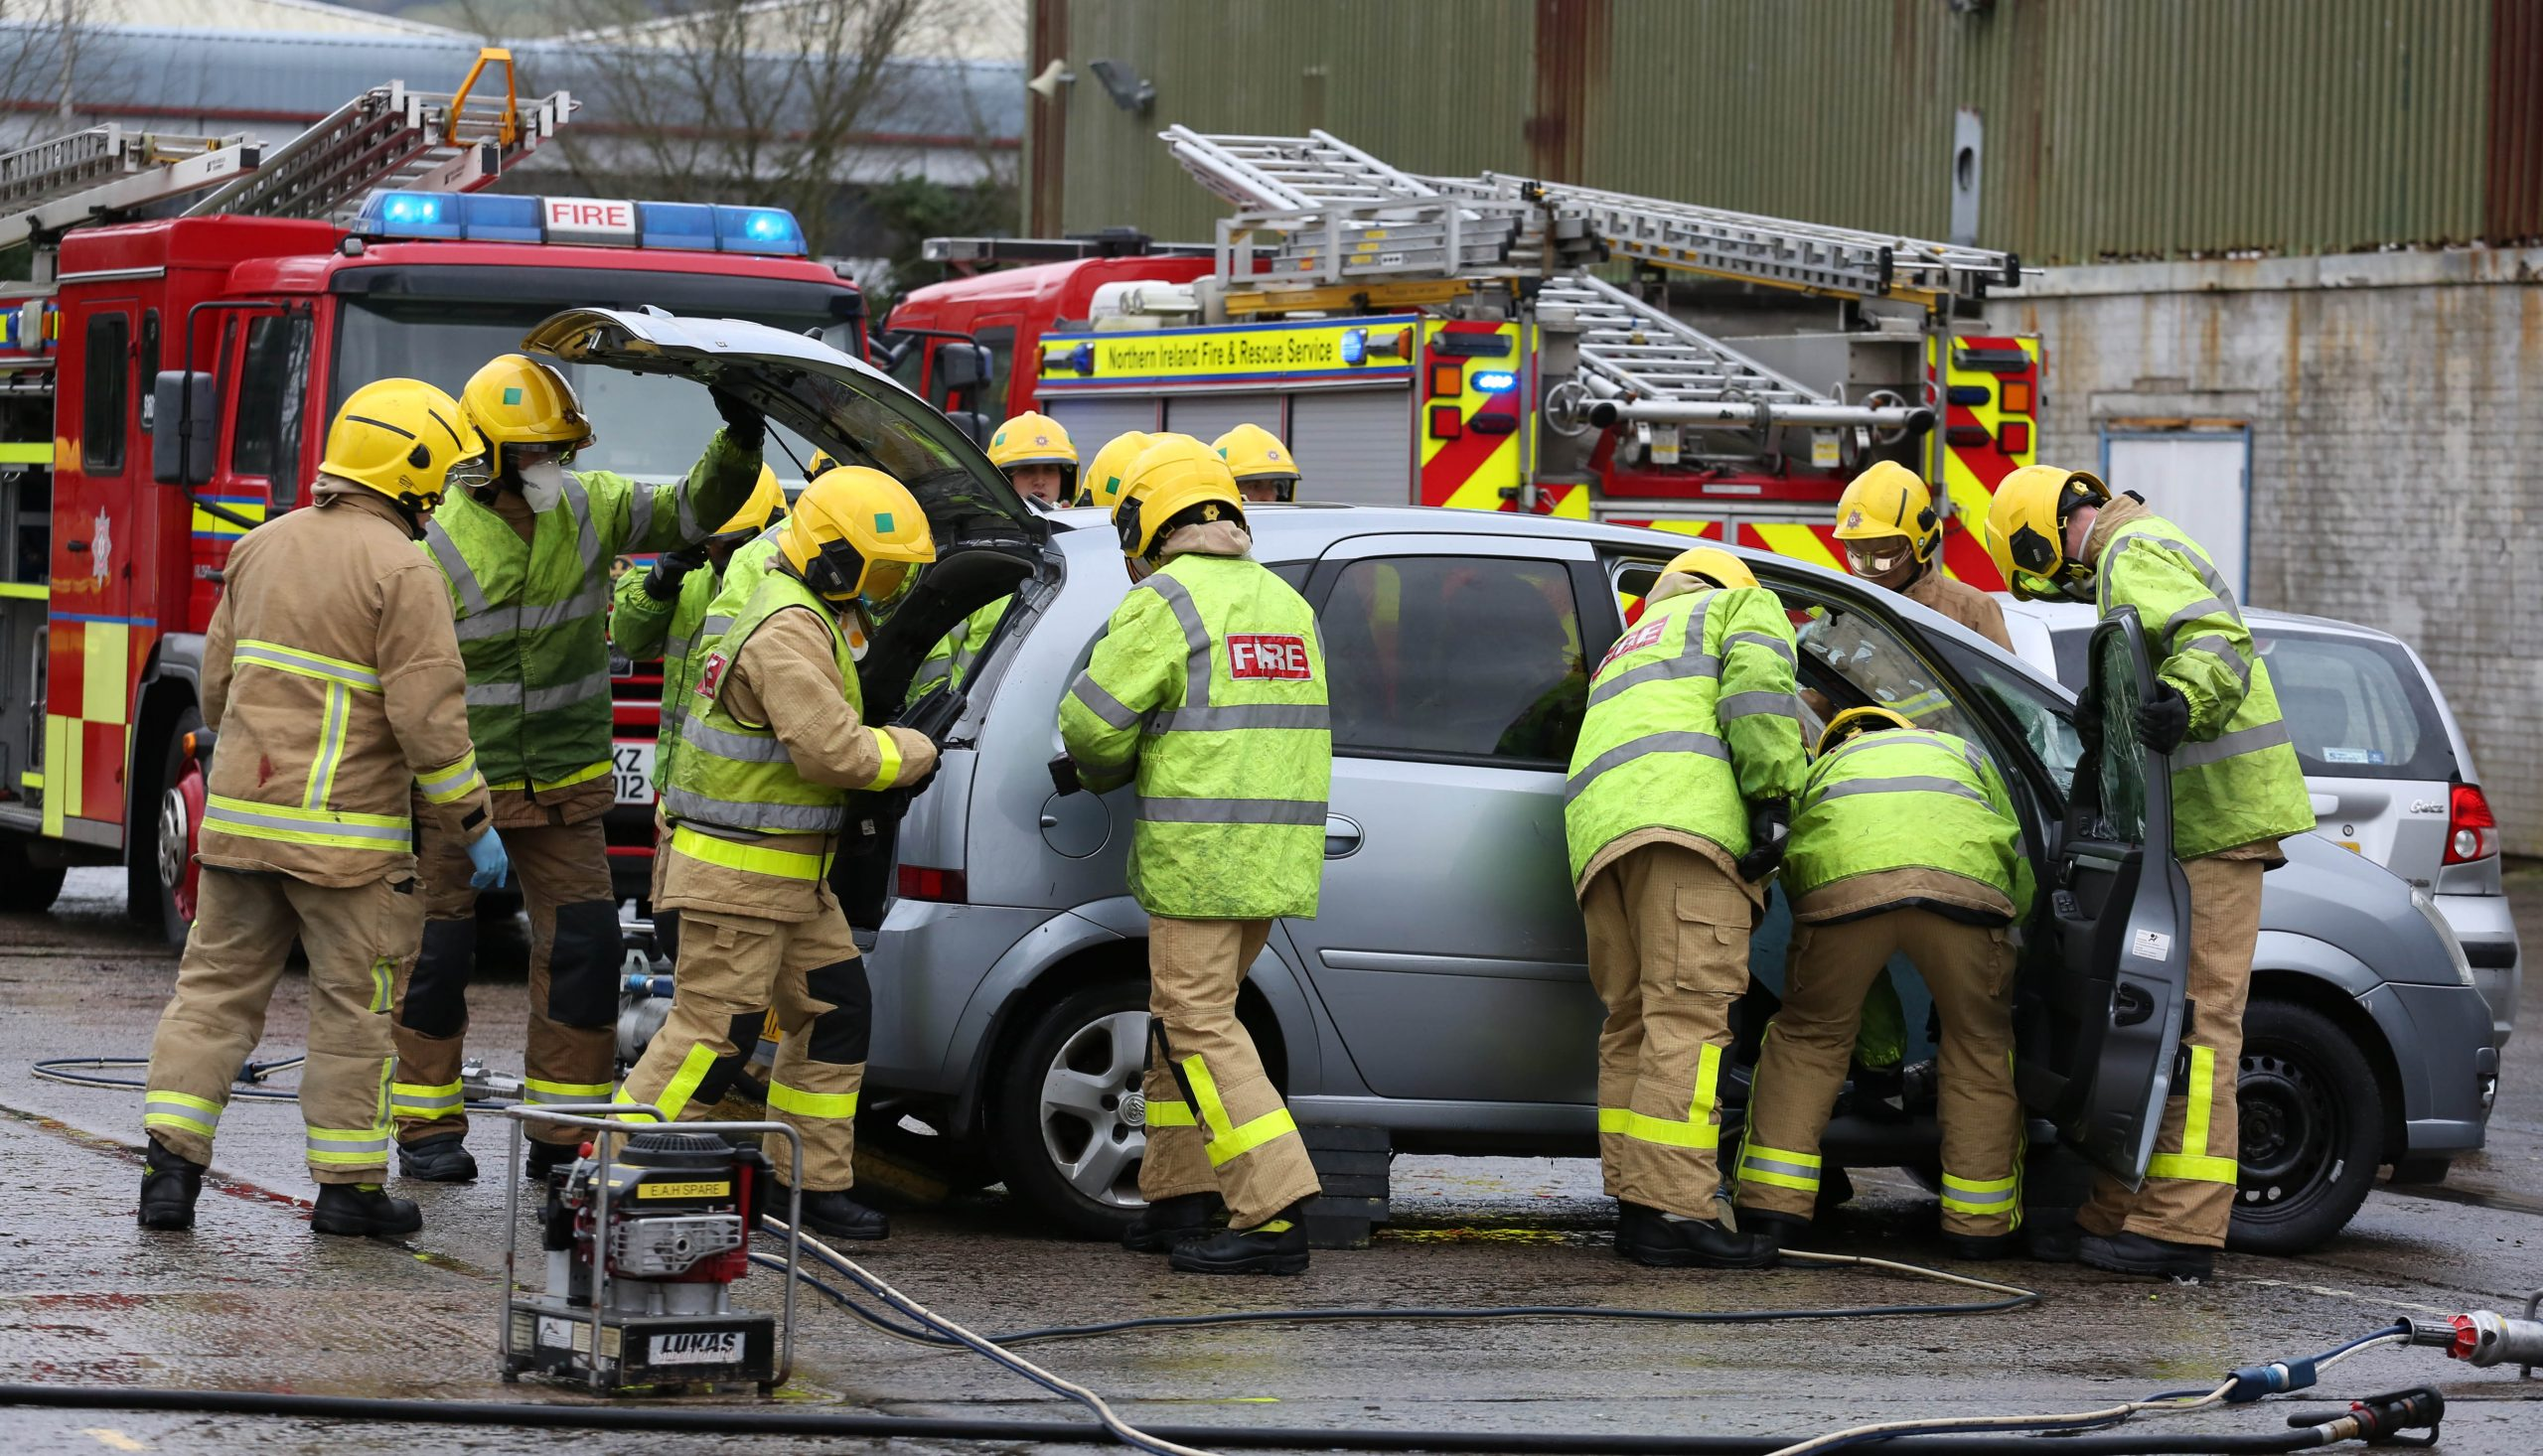 Firefighters inspecting a car